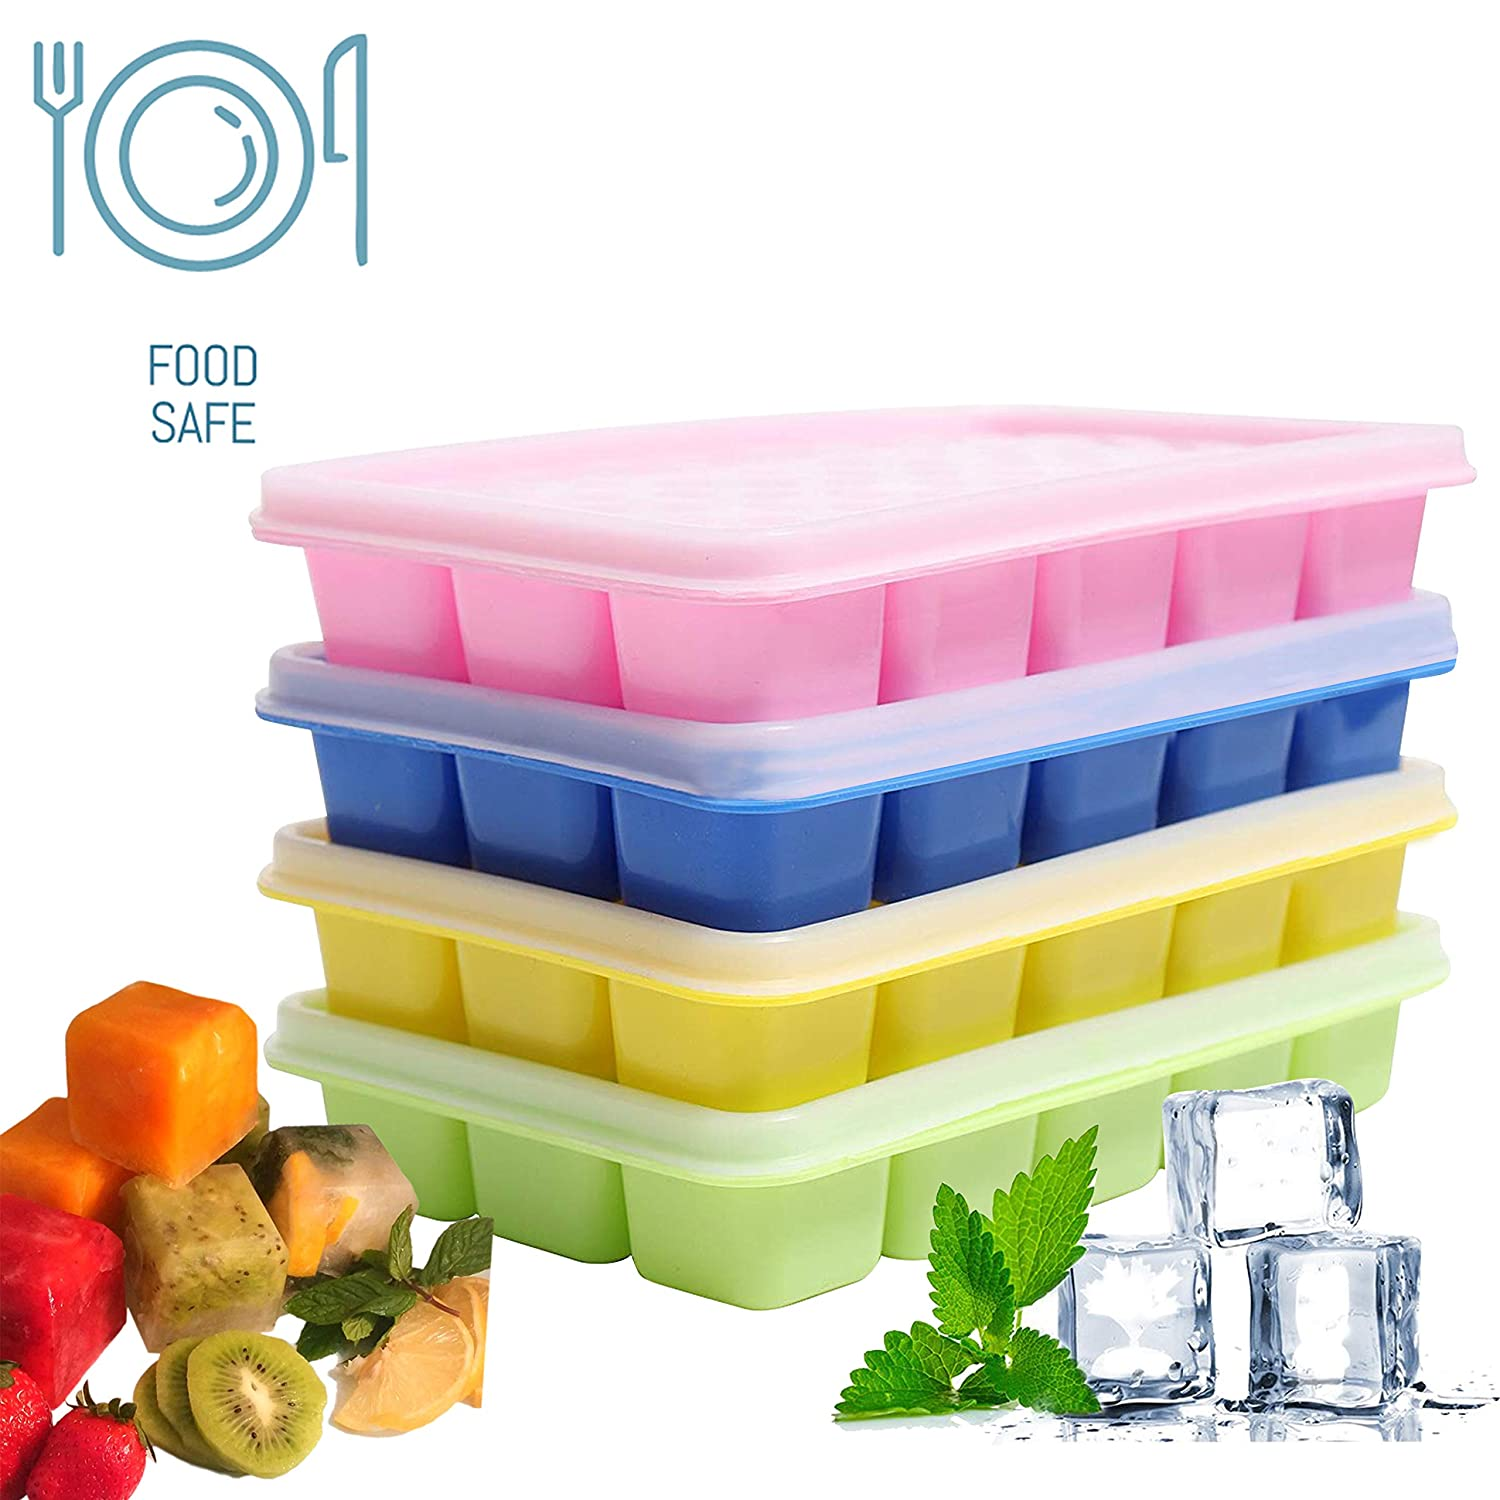 3300c4861 Ice Cube Trays with Clear Lids (4 pcs) - Flexible Silicone BPA Free Covered  Ice Cube Tray Set with 60 Molds - Stackable Easy Release Ice Cube Moulds ...